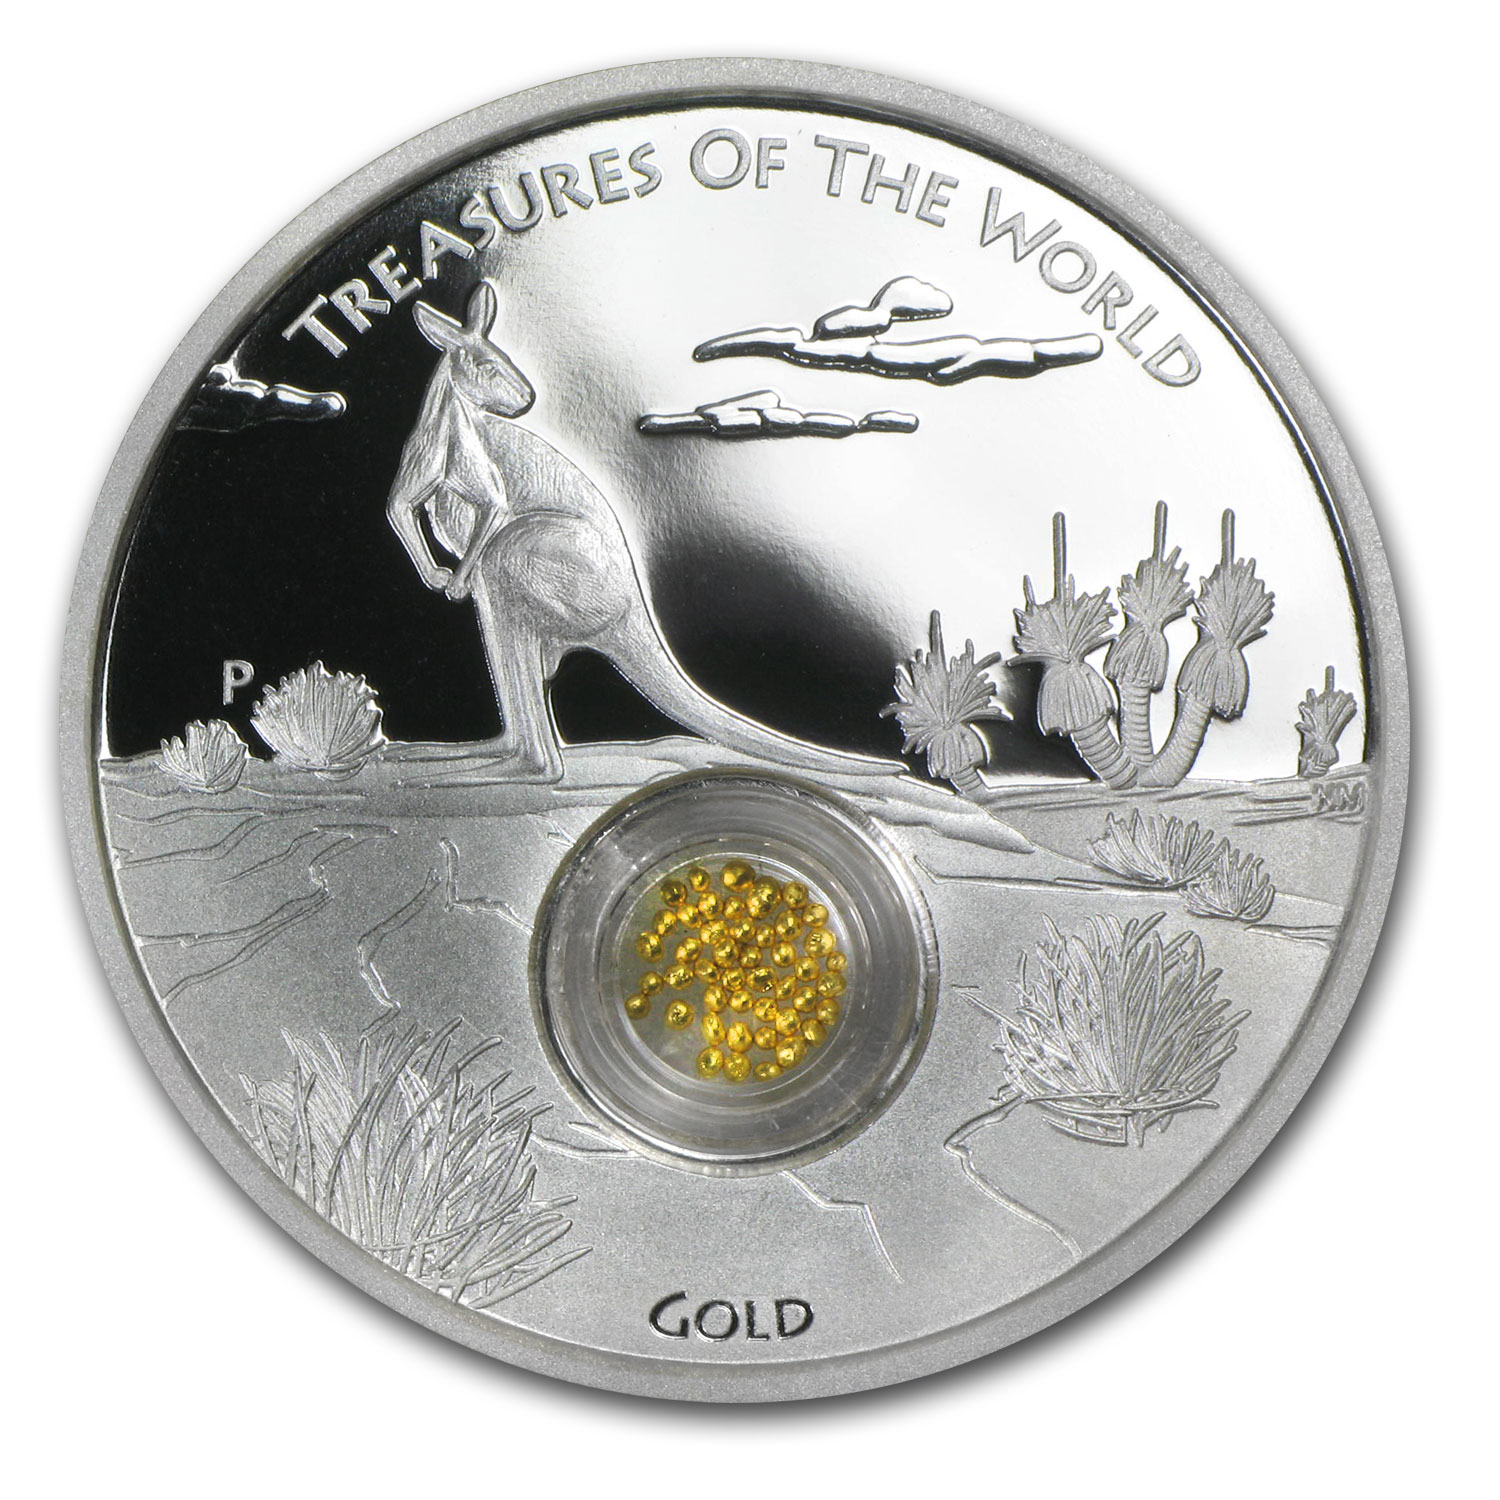 2014 Australia 1 oz Silver Locket Proof (Treasures of the World)